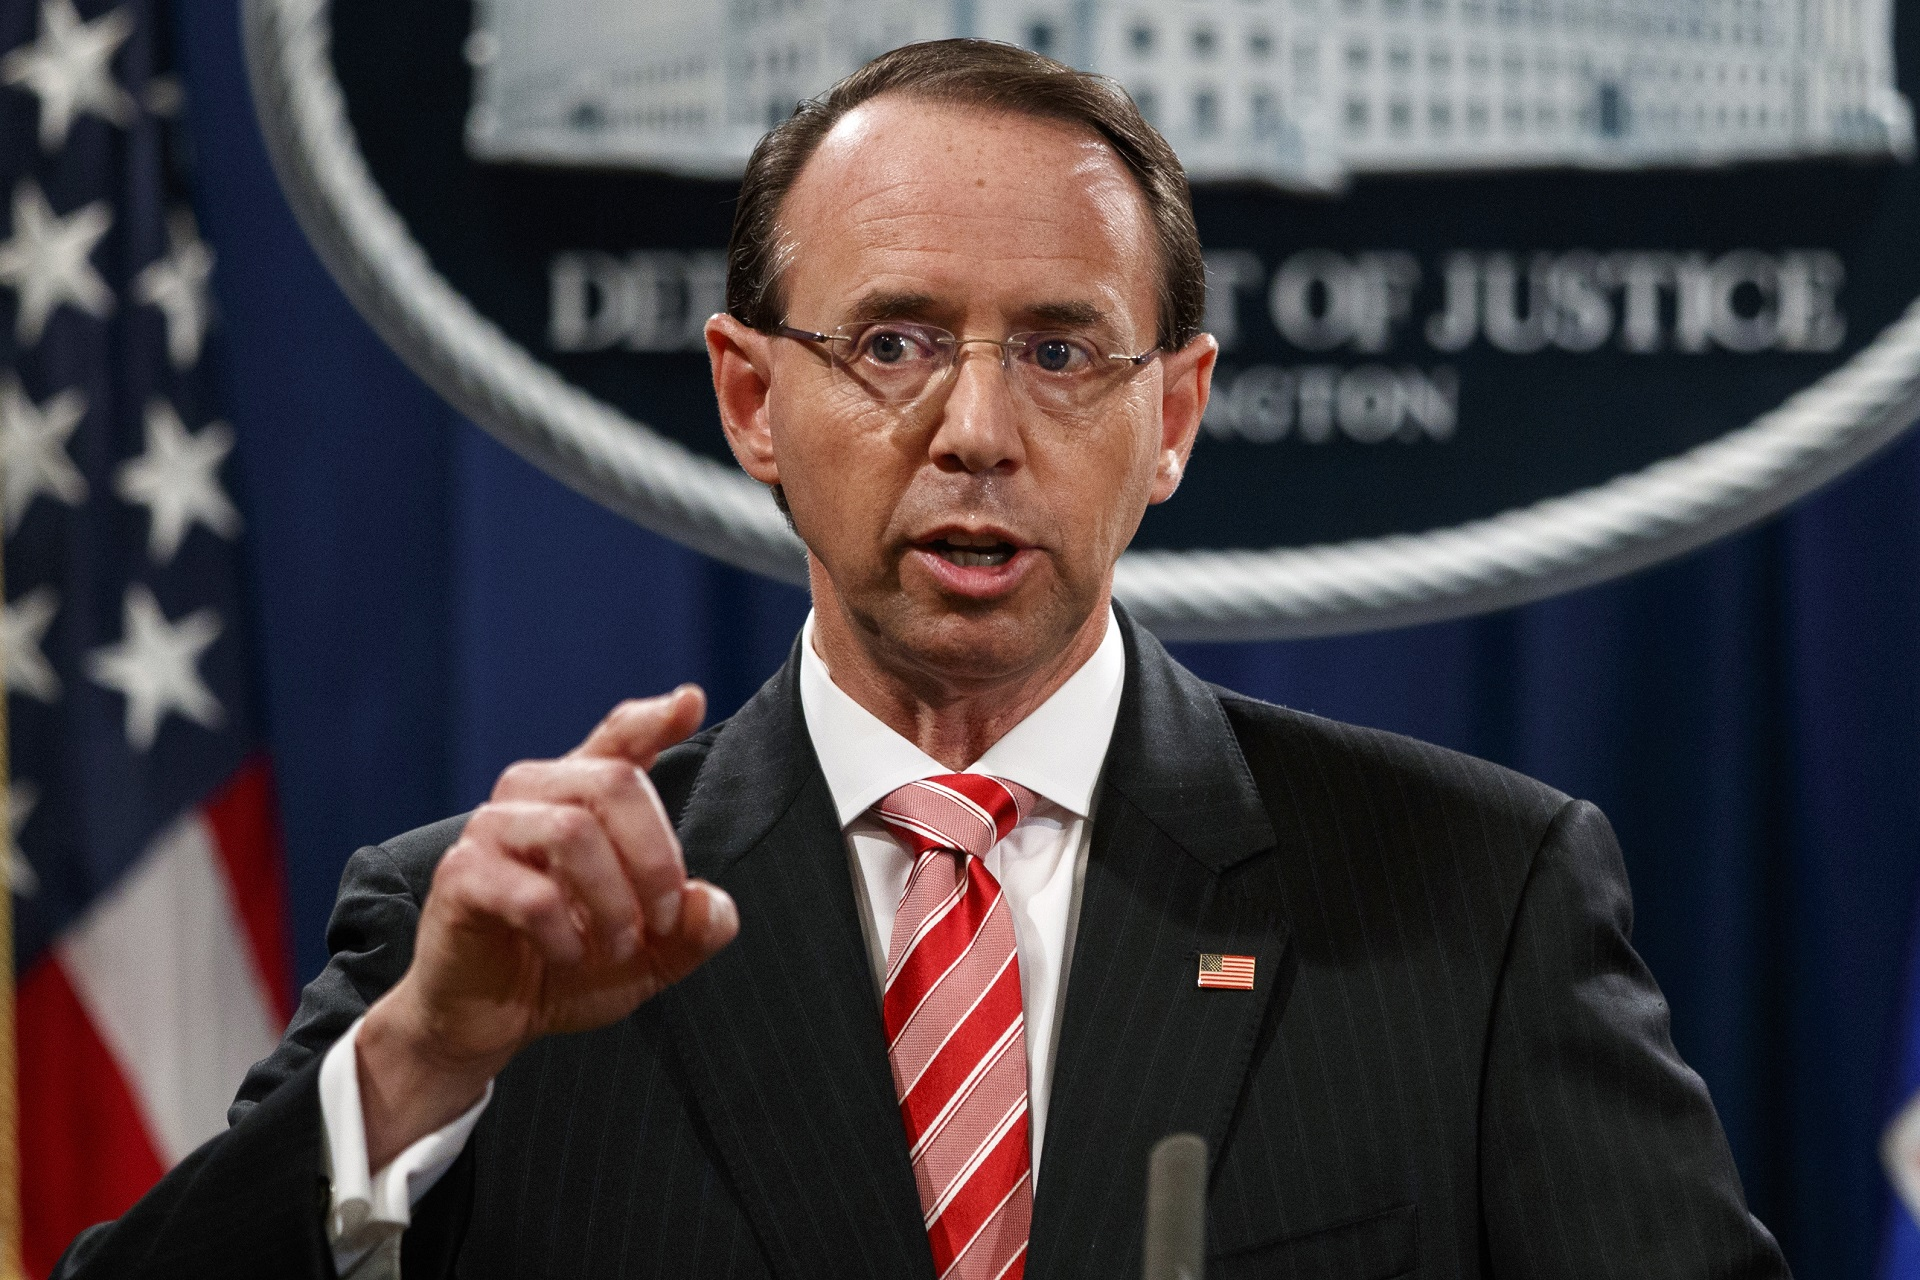 Rosenstein: Special counsel probe is 'appropriate and independent'